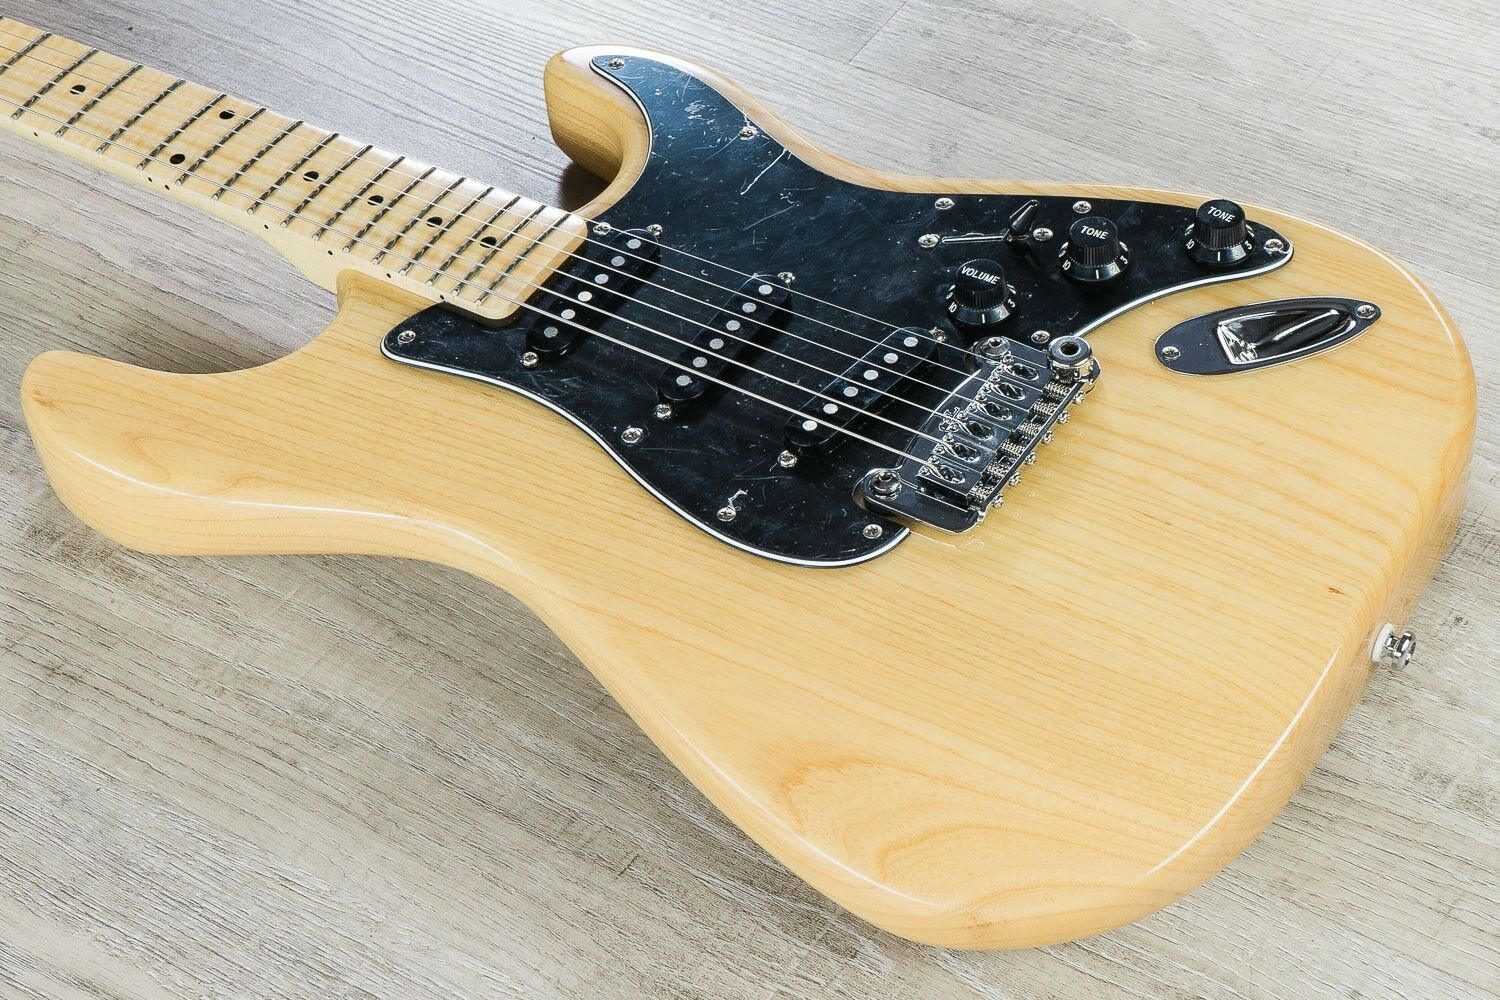 G&L Tribute Legacy Solidbody Electric Guitar Maple Fingerboard Natural Gloss